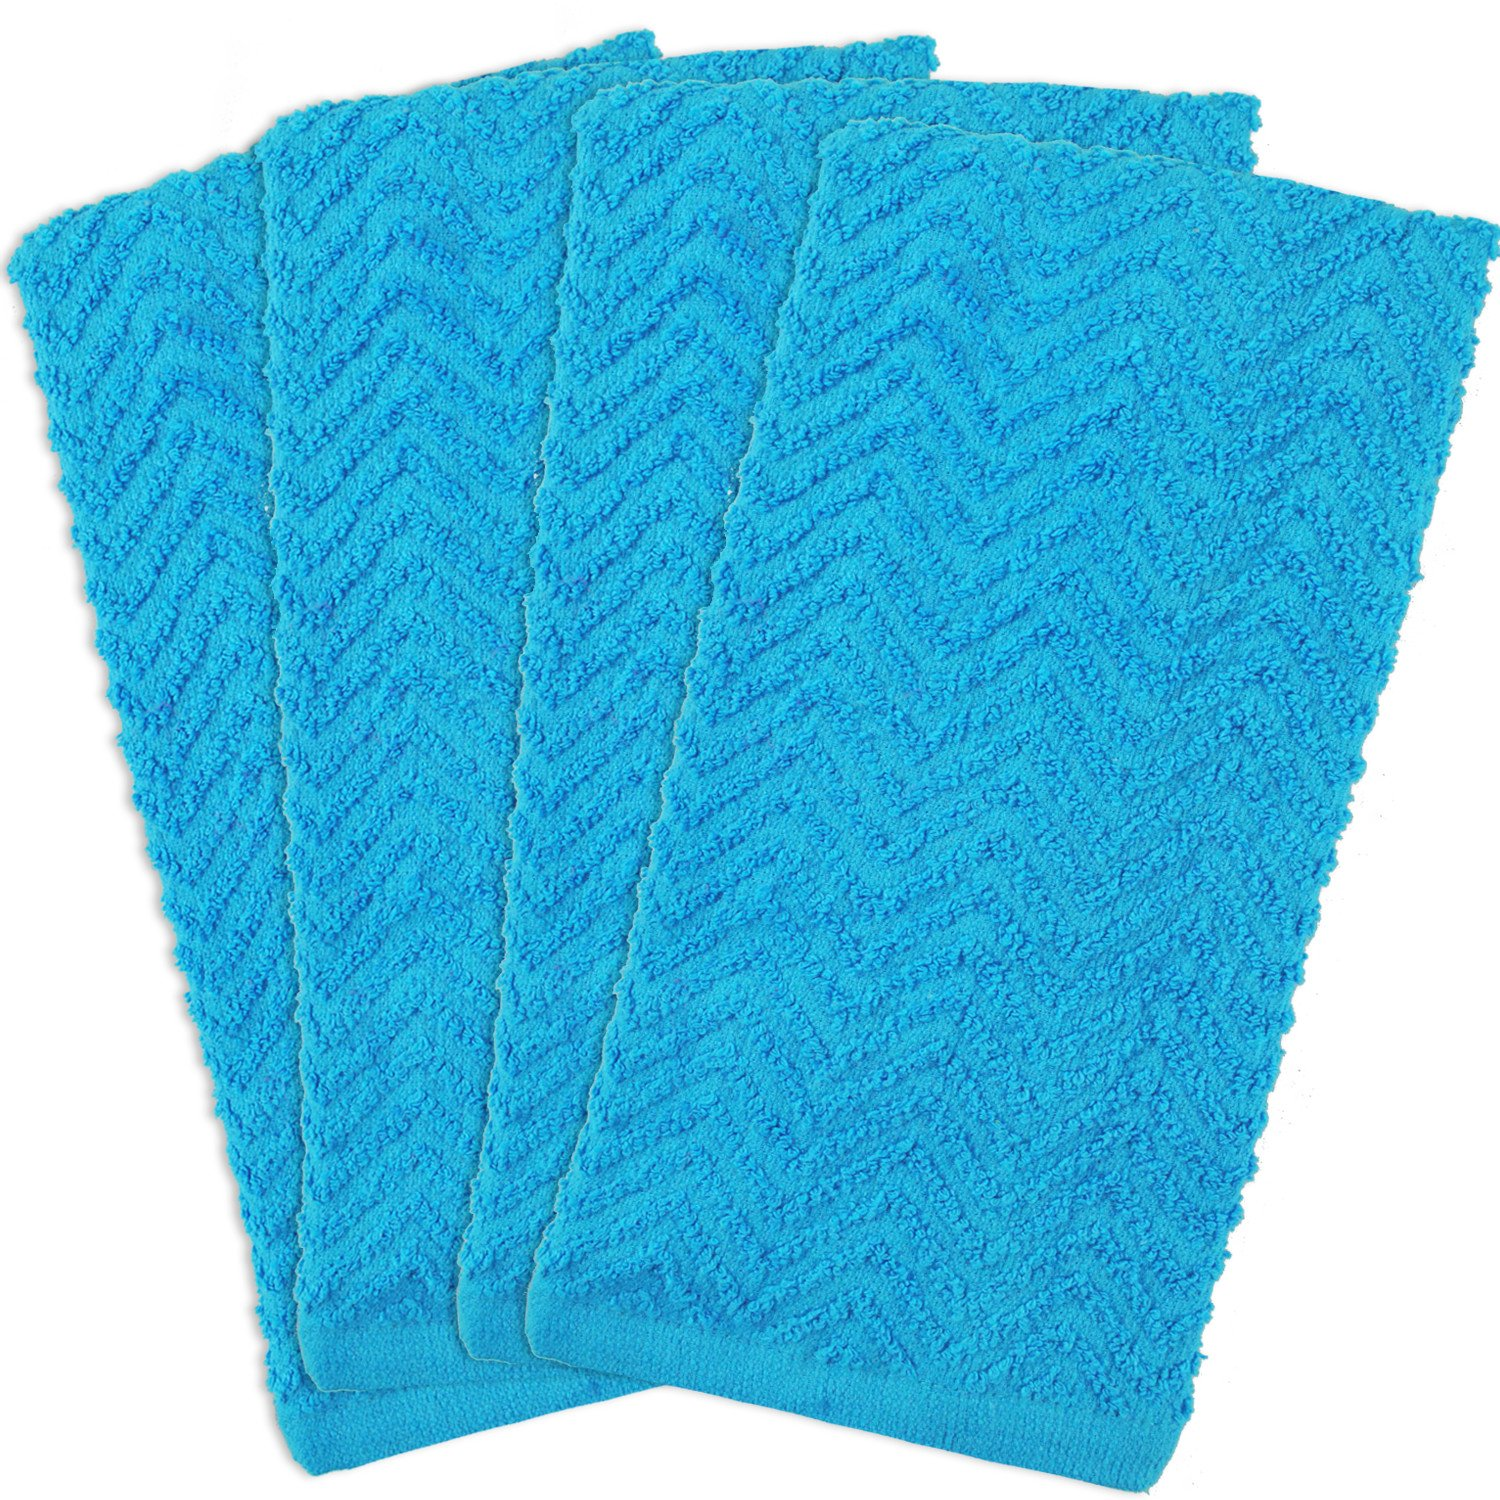 DII 100% Cotton, Everyday Kitchen Basic, Heavy Duty Bar Mop, Drying & Cleaning, 16 x 28 Zig Zag Weave Dishtowel, Set of 4 Neon Blue